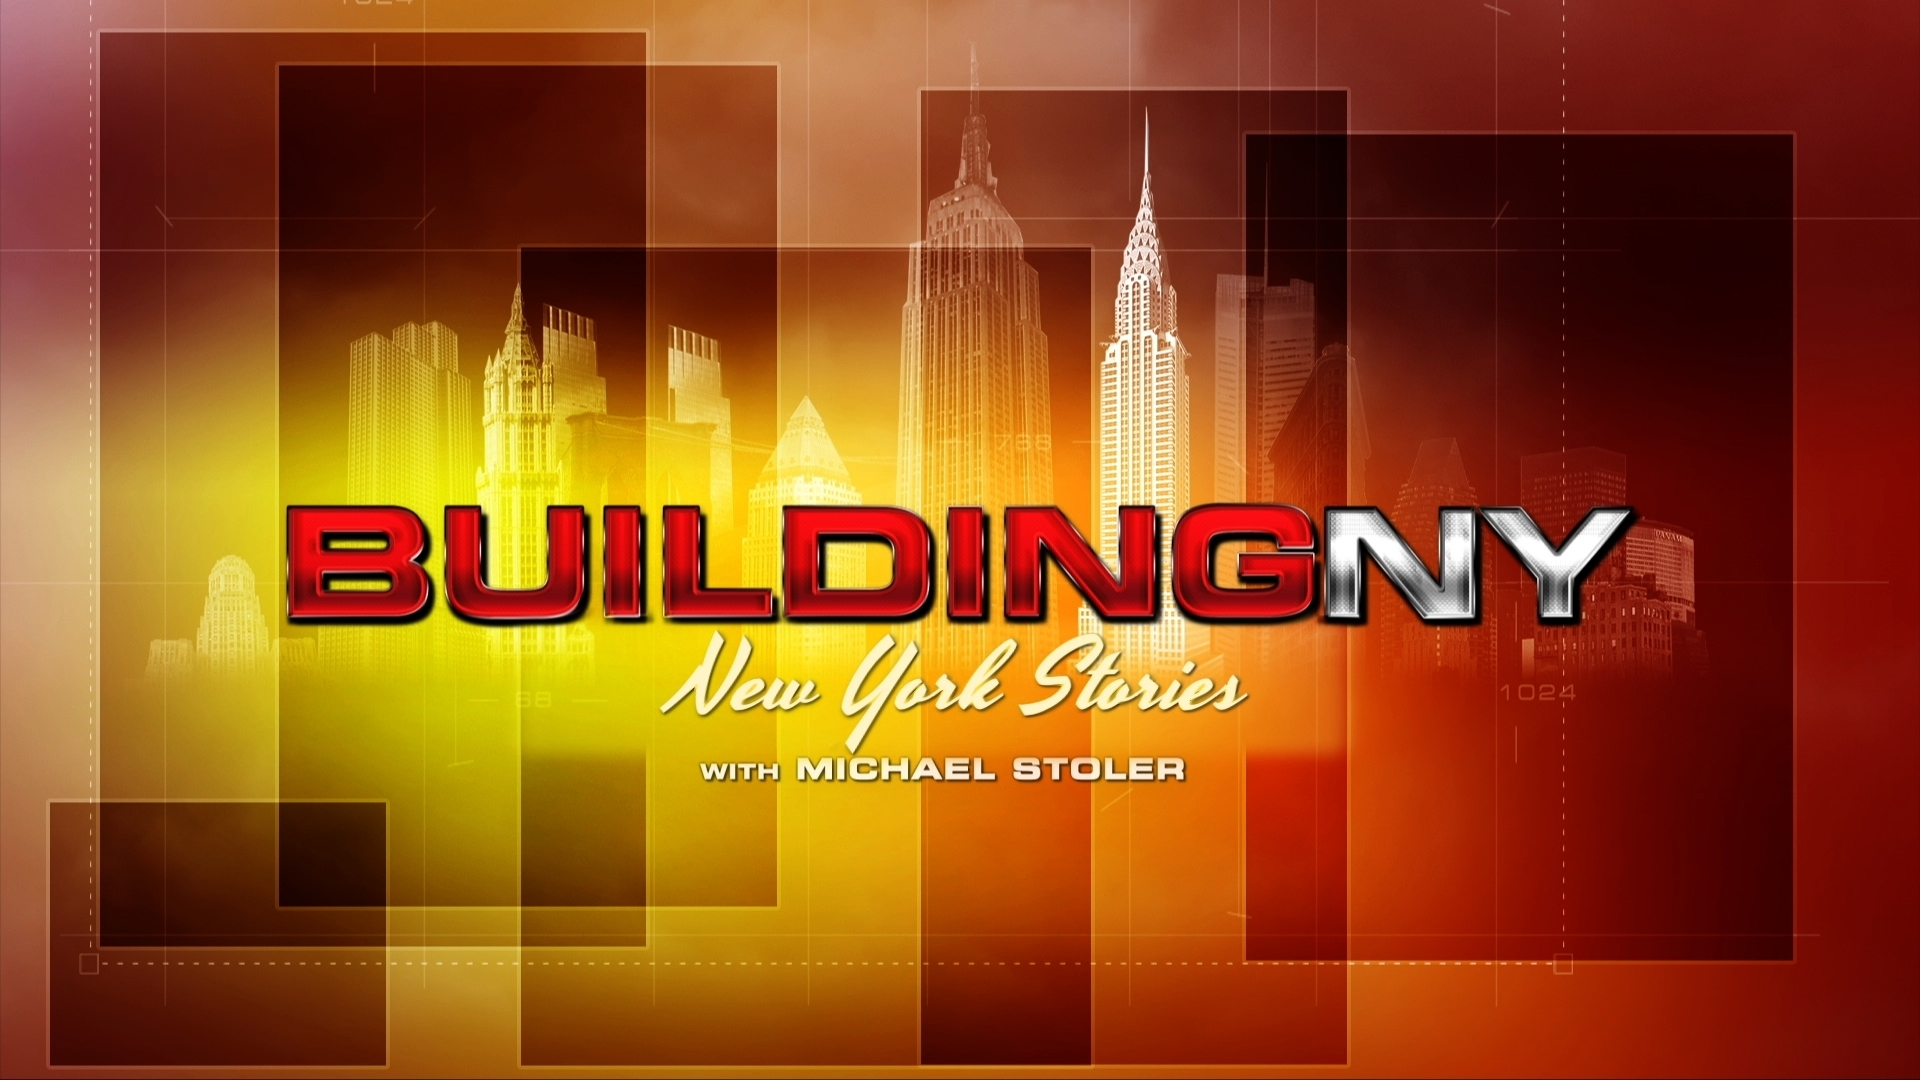 building new york logo, june 2013.JPG